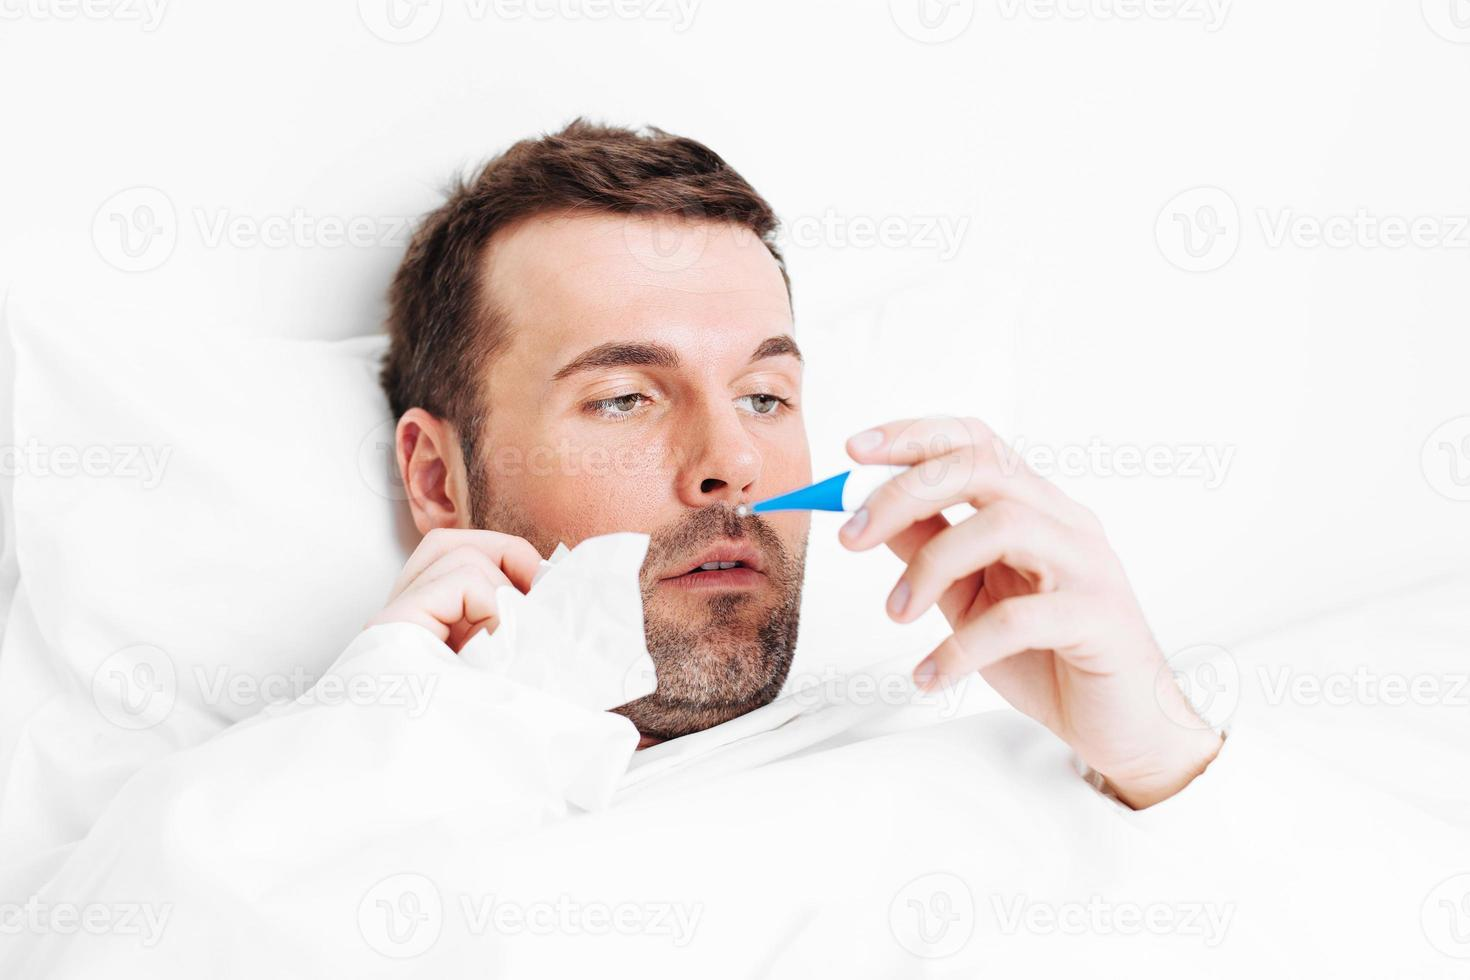 In bed with flu photo